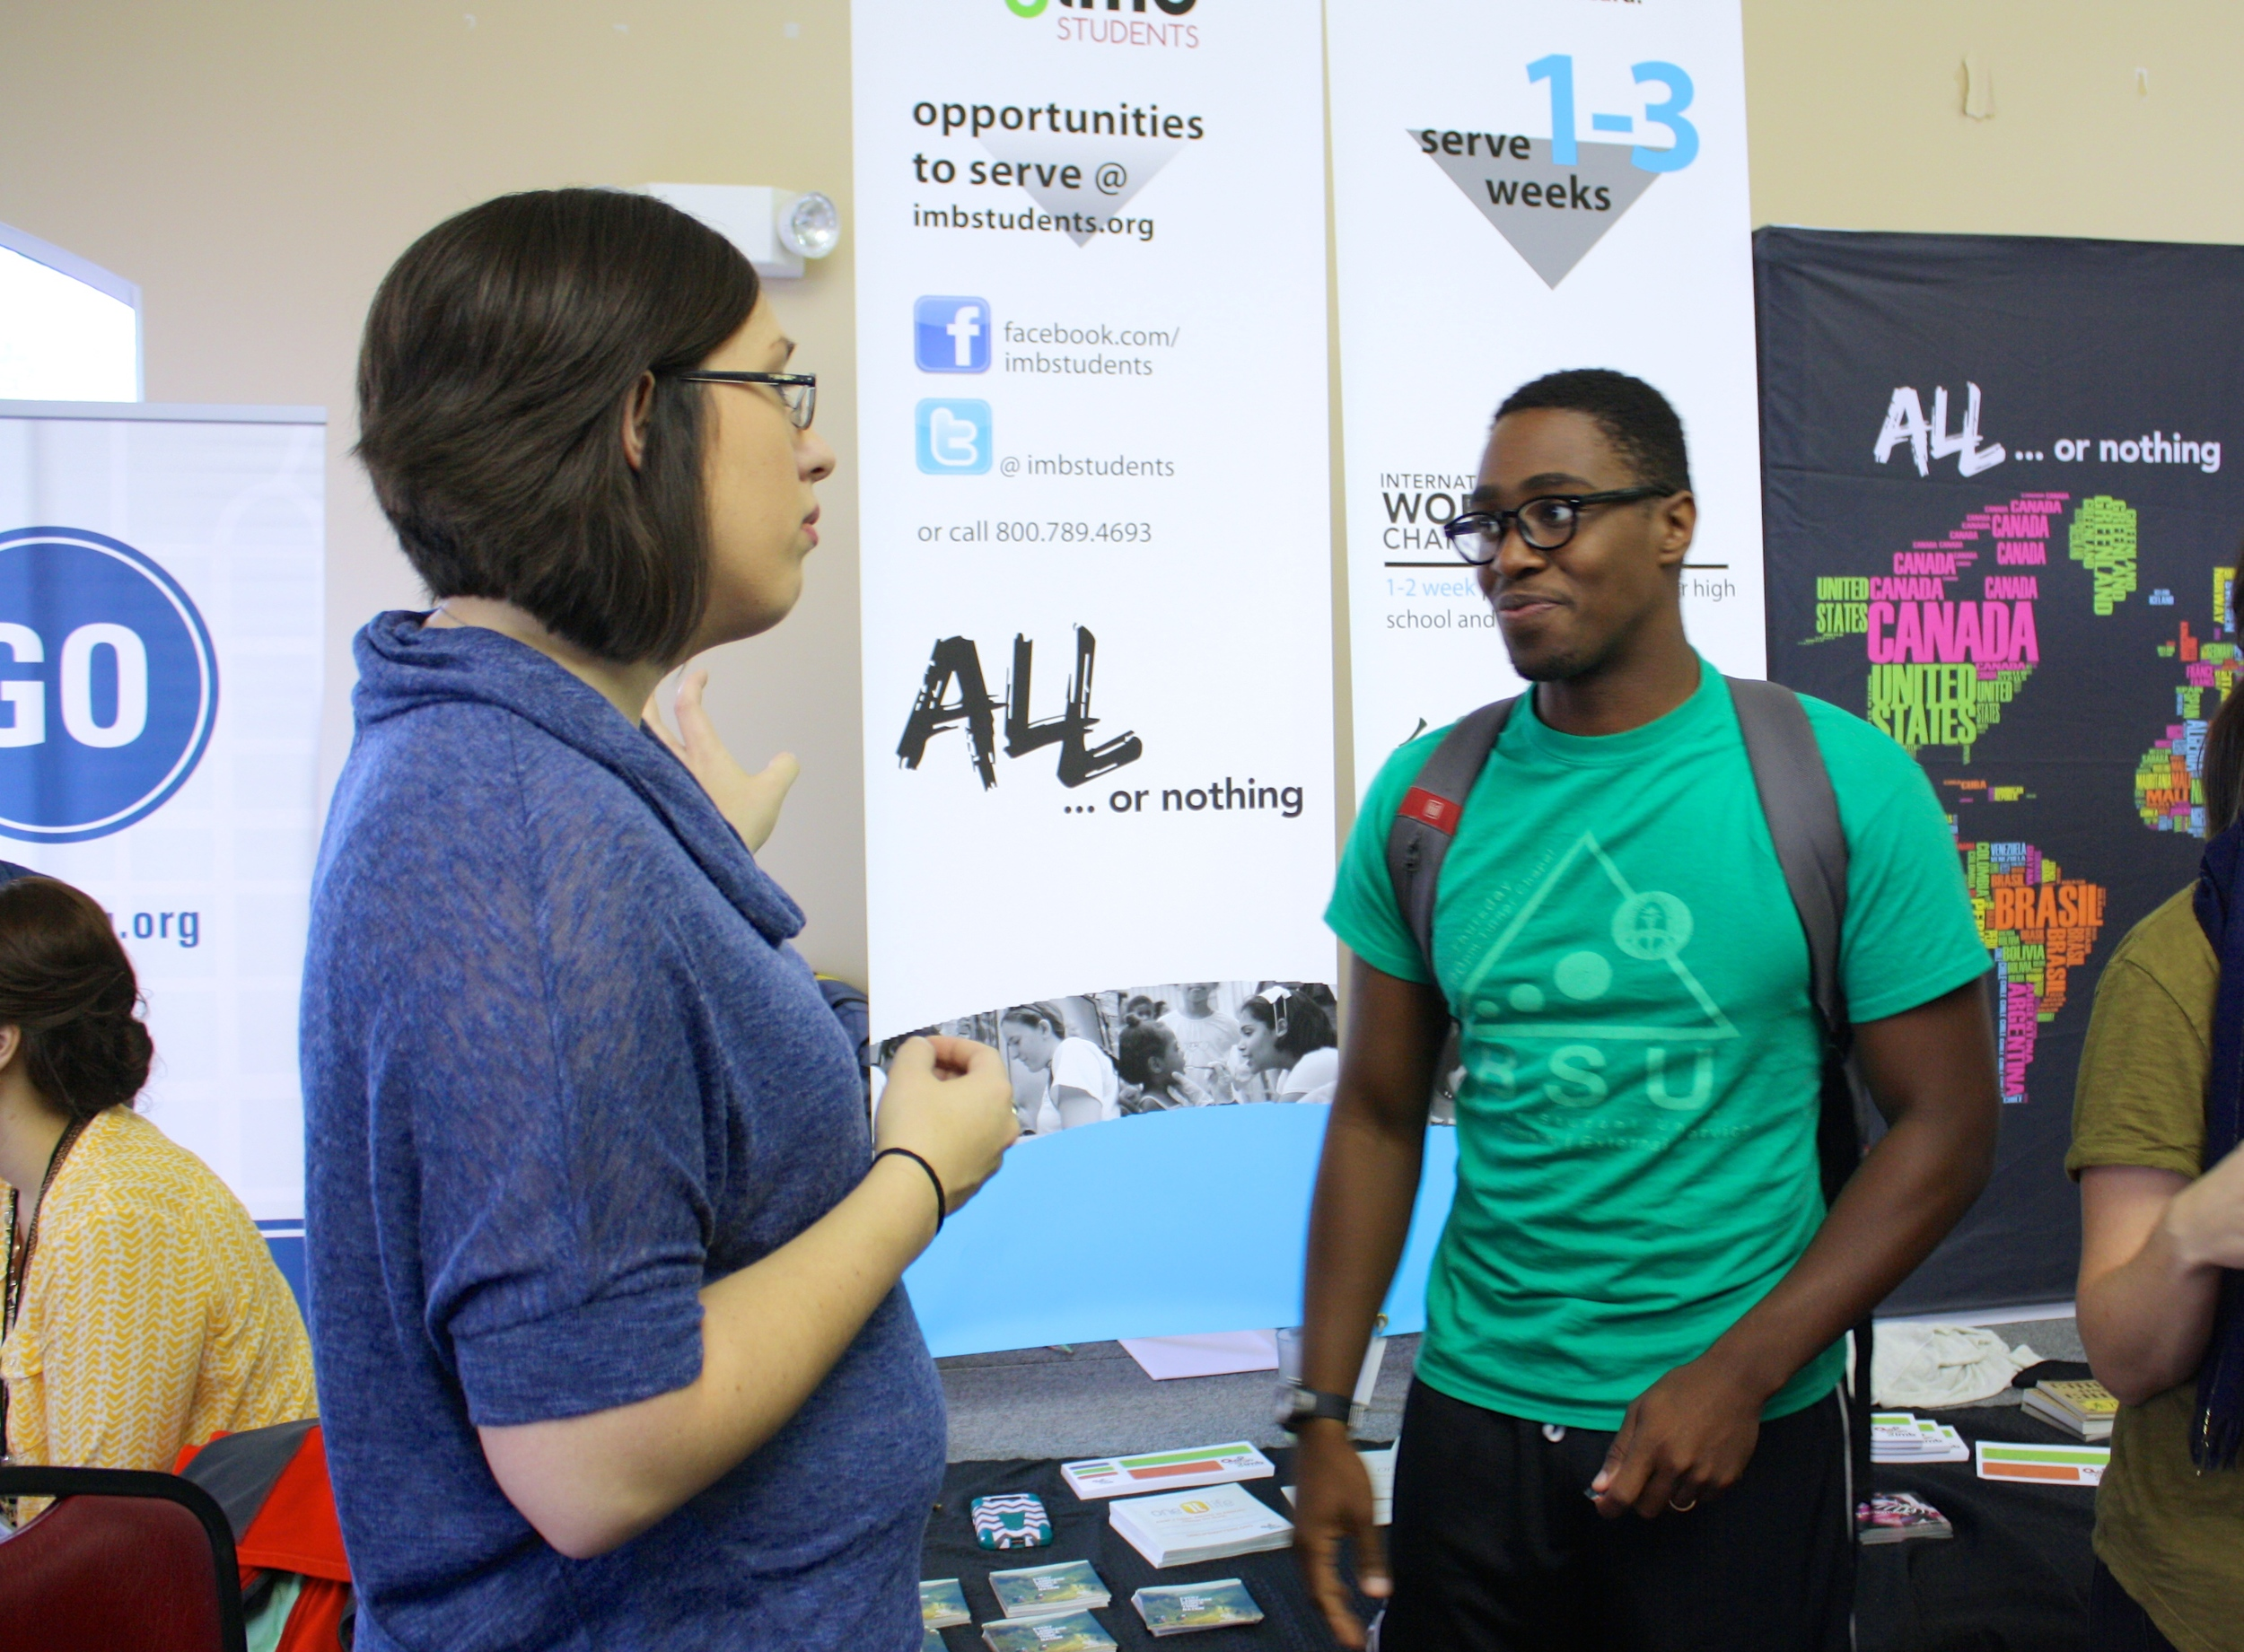 A missionary and a student discuss missions during NGU's global missions week September 8-10.